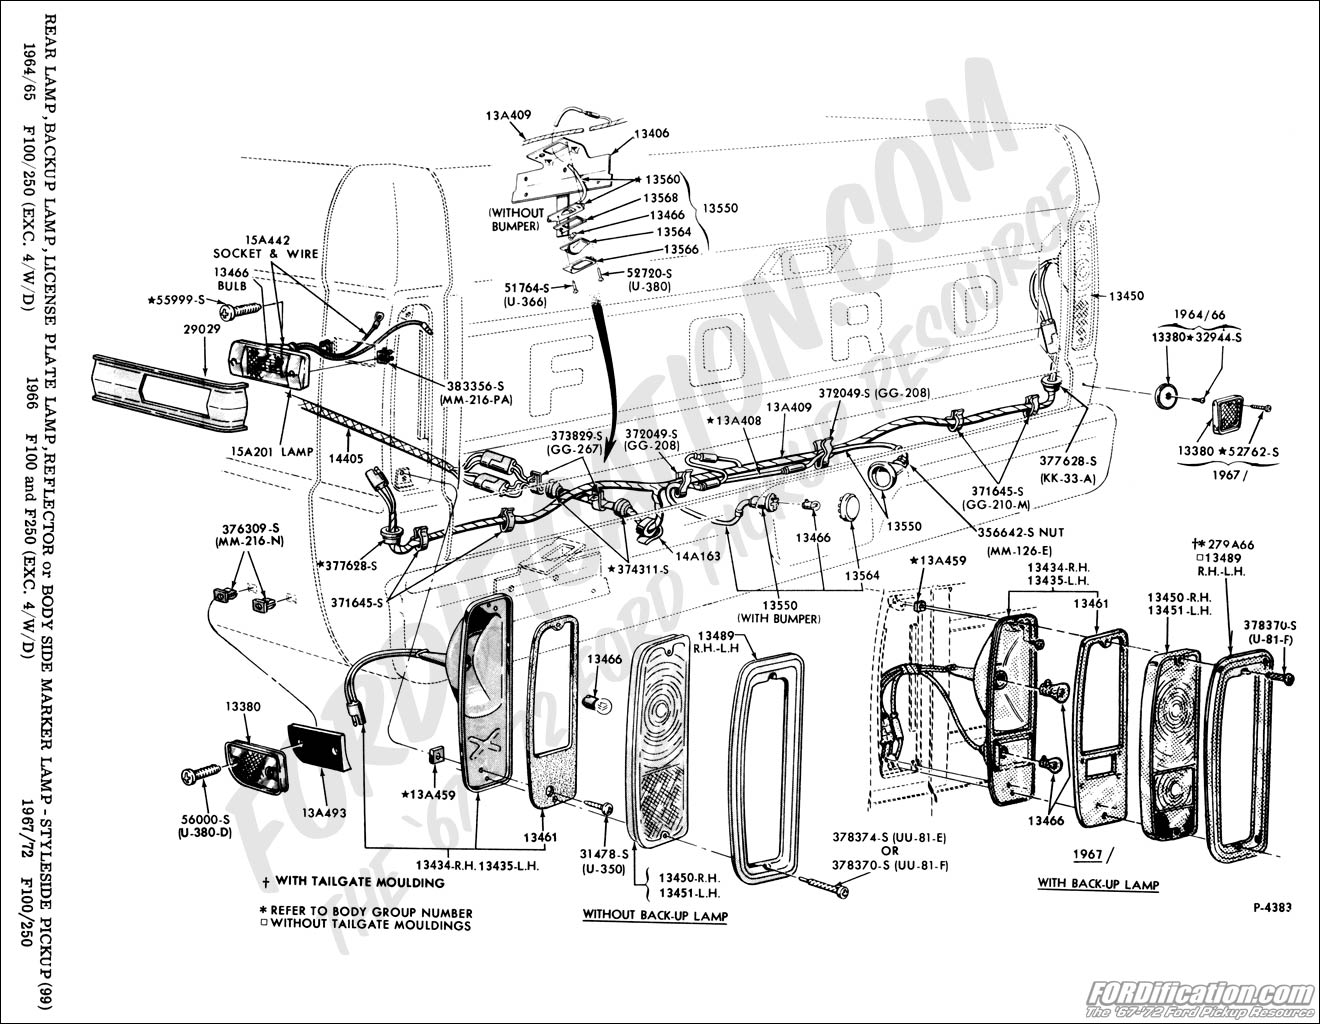 Wiring Diagram For Tail Lights For Yellowstone